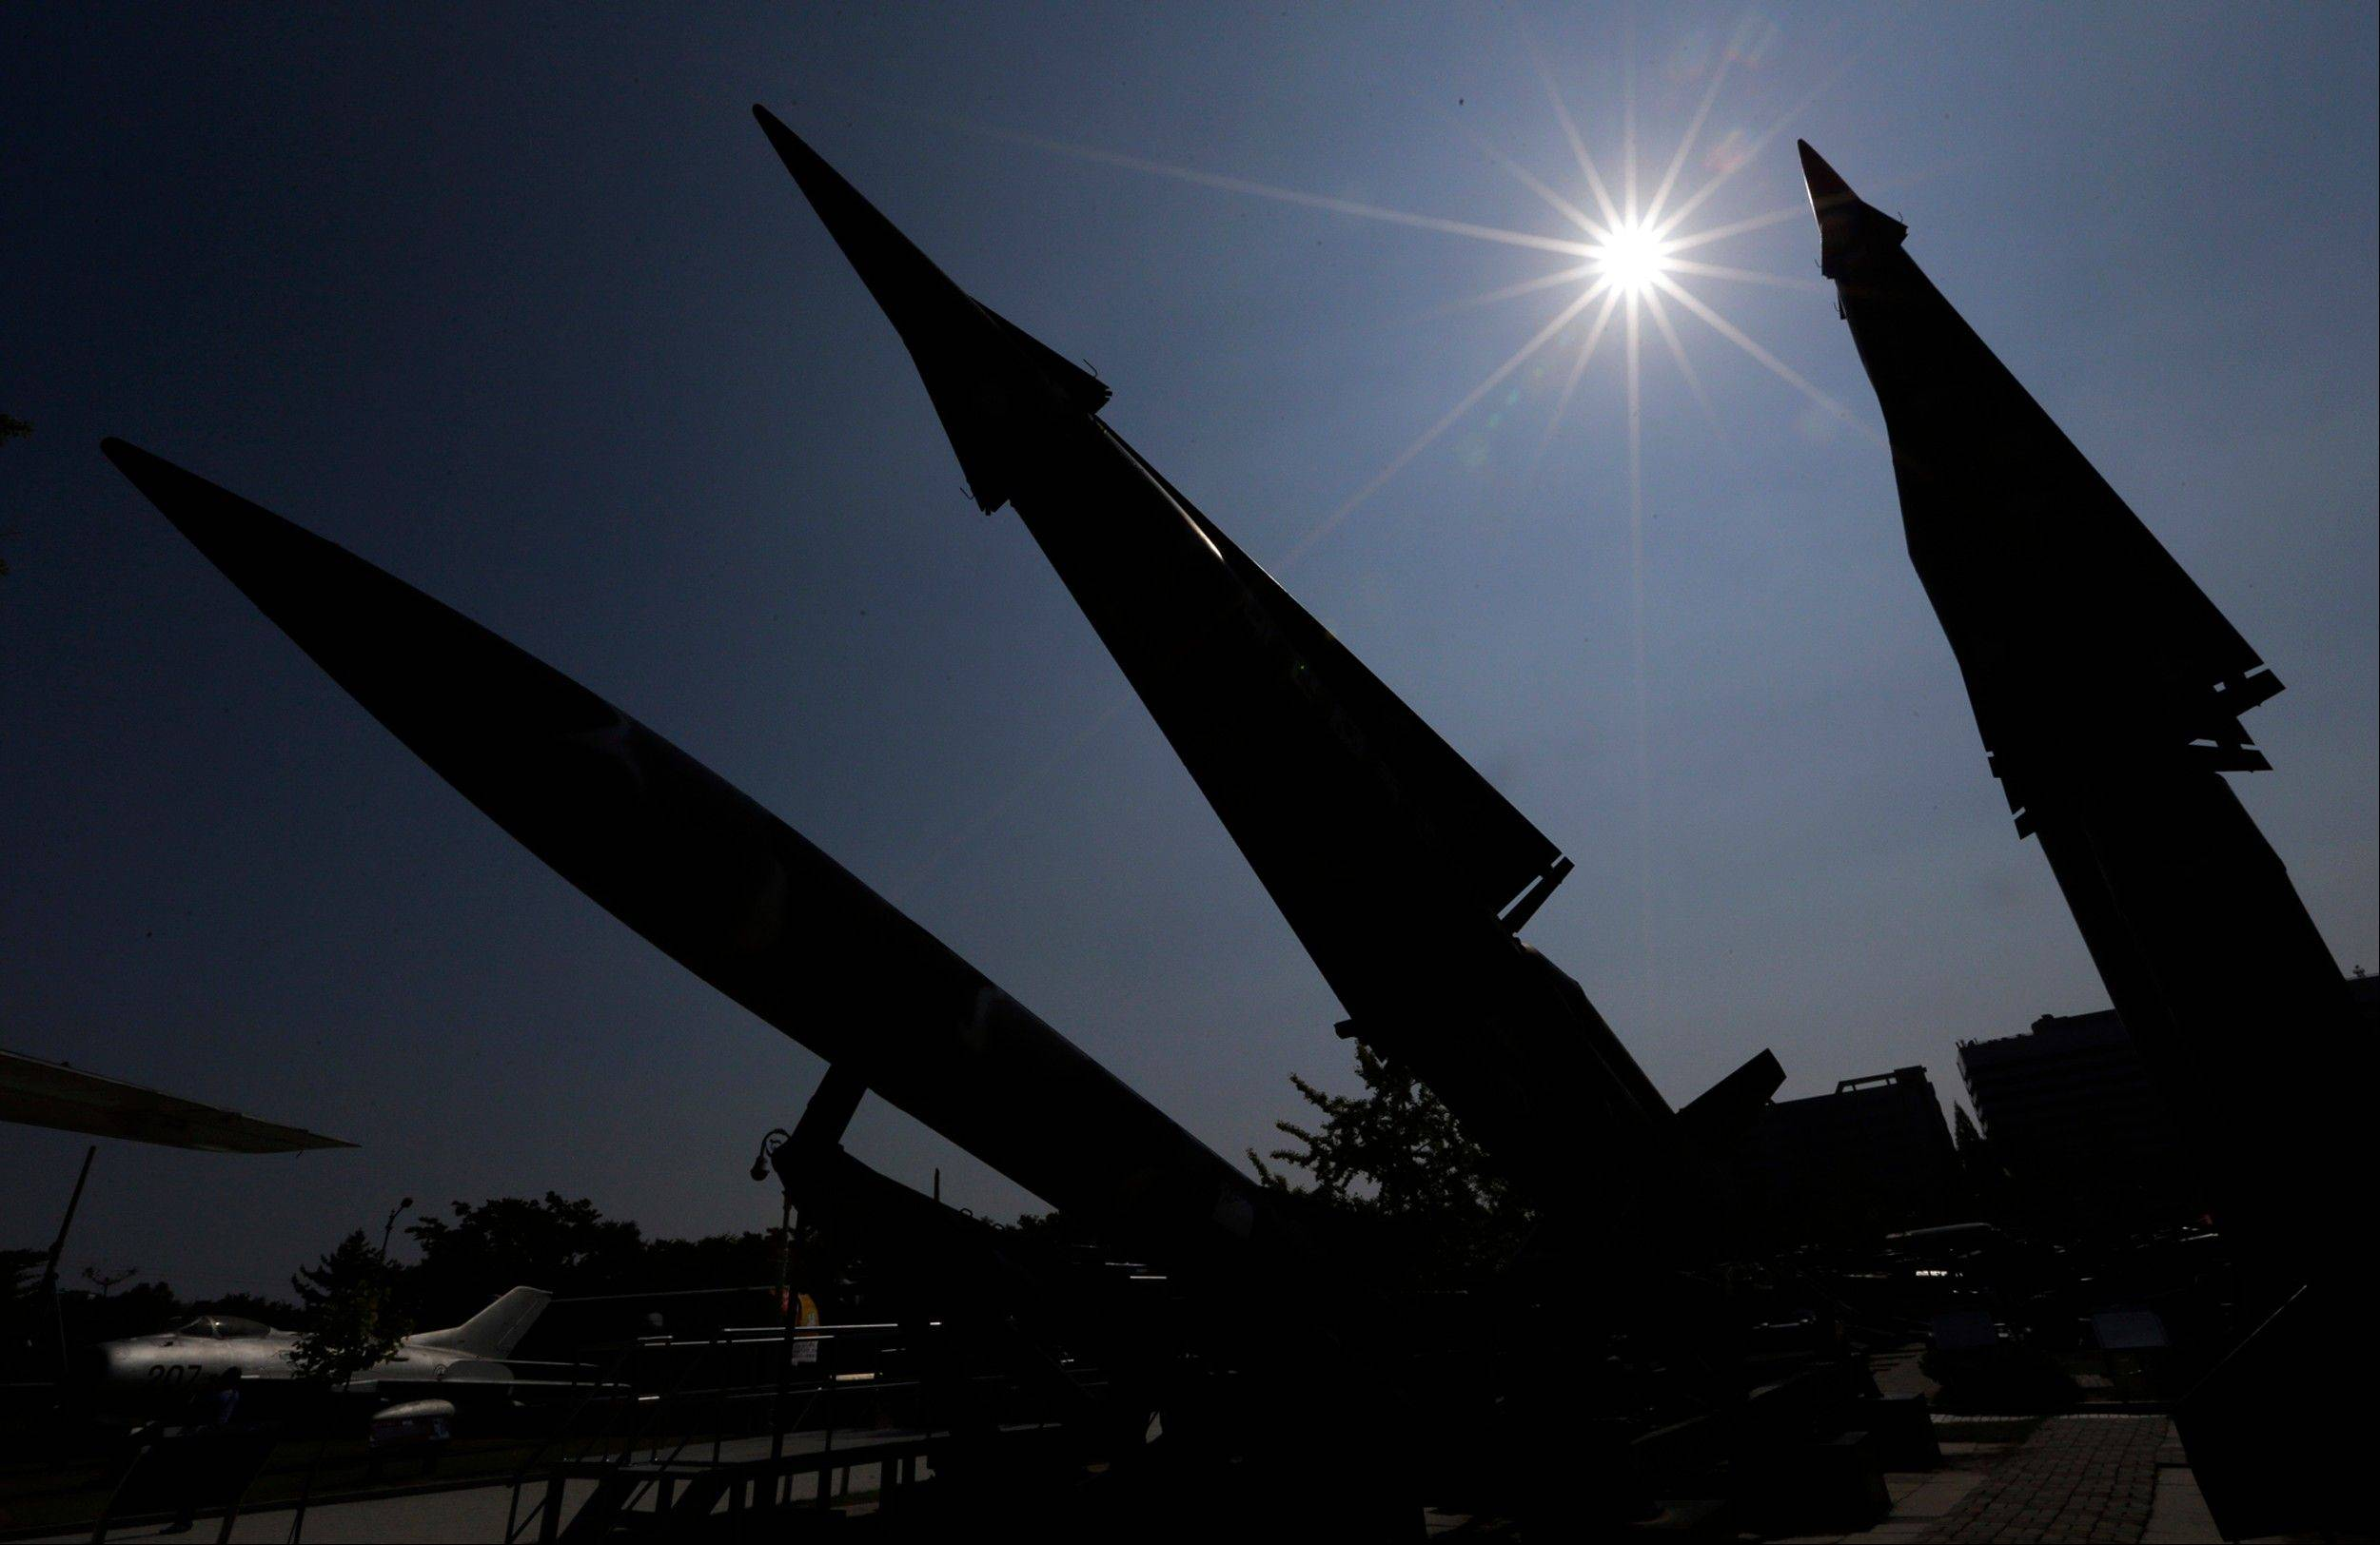 South Korean mock missiles are silhouetted at the Korea War Memorial Museum in Seoul, South Korea, Sunday, Oct. 7, 2012. South Korea said the U.S. has agreed to allow it to develop longer-range missiles that could strike all of North Korea.